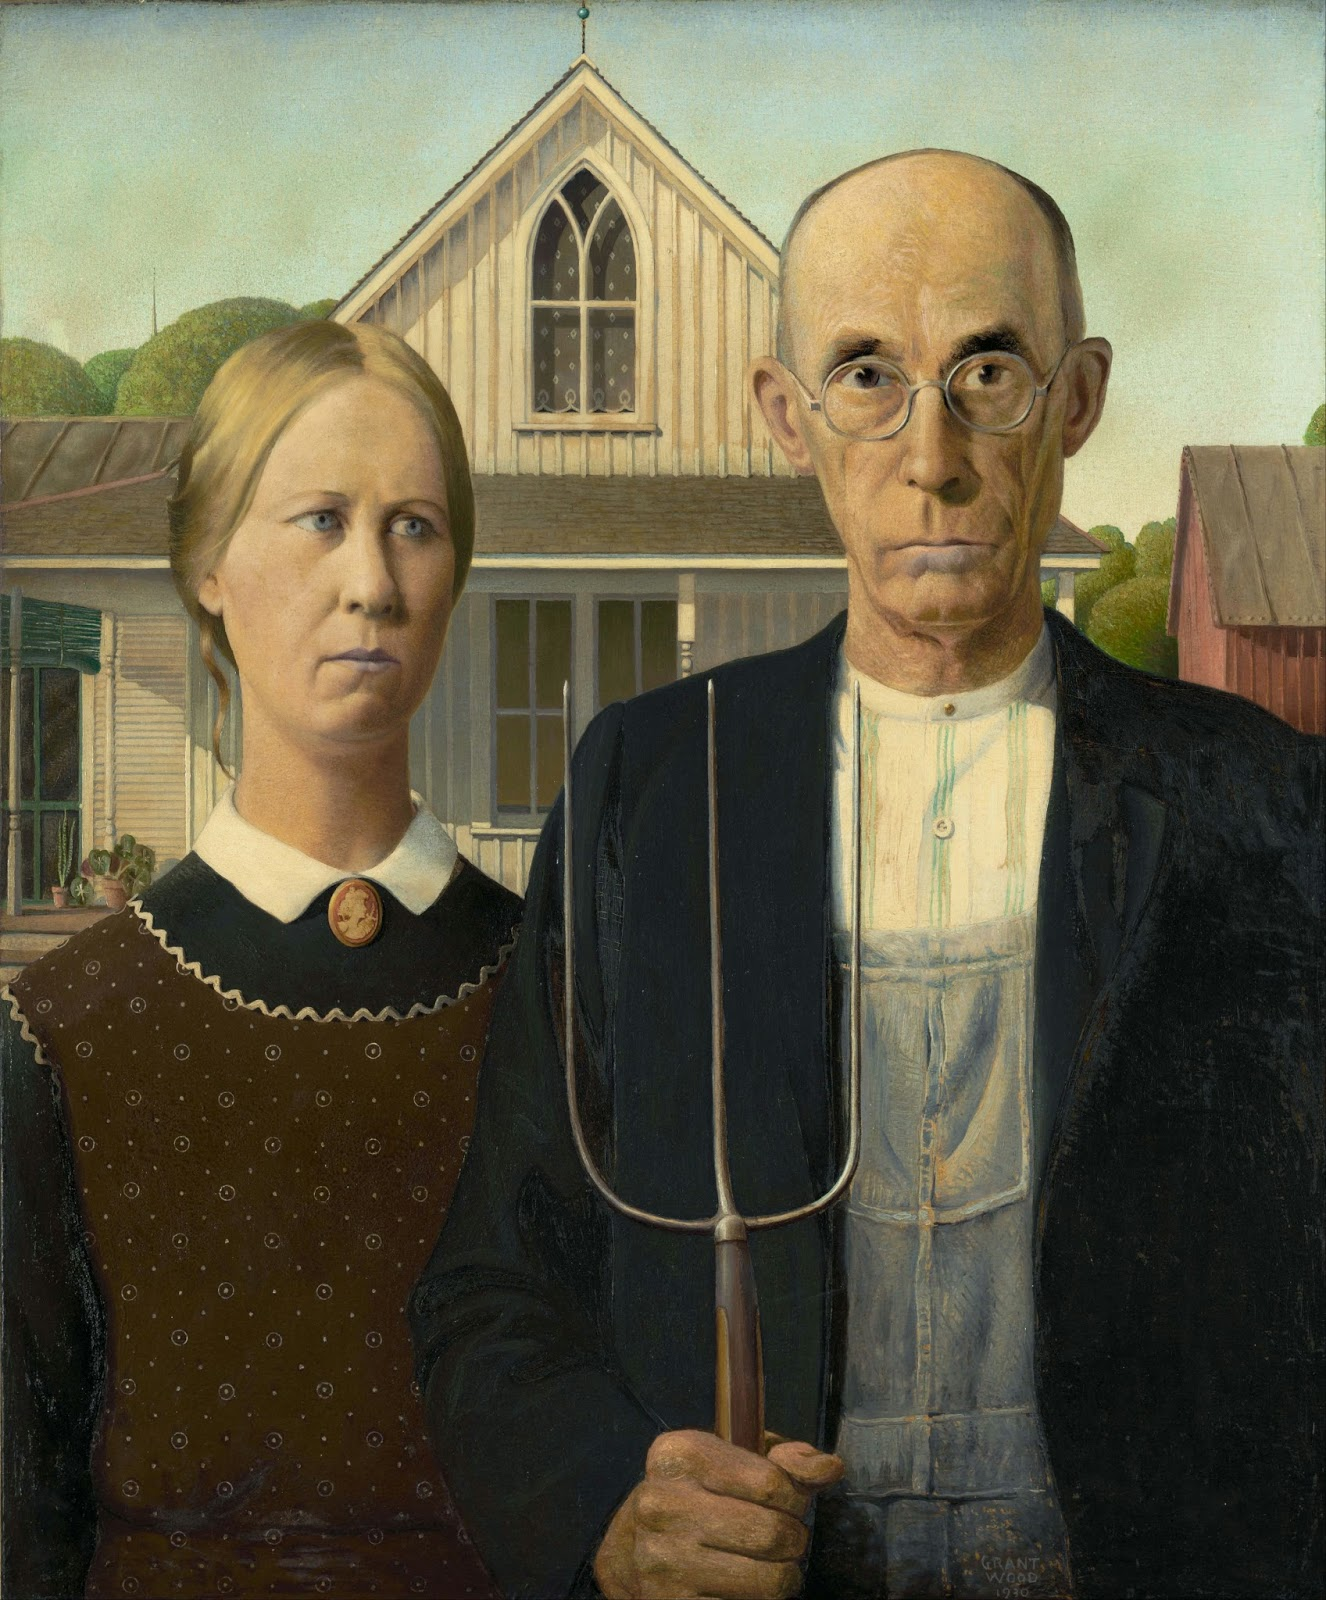 1930s American Paintings 1930 American Gothic